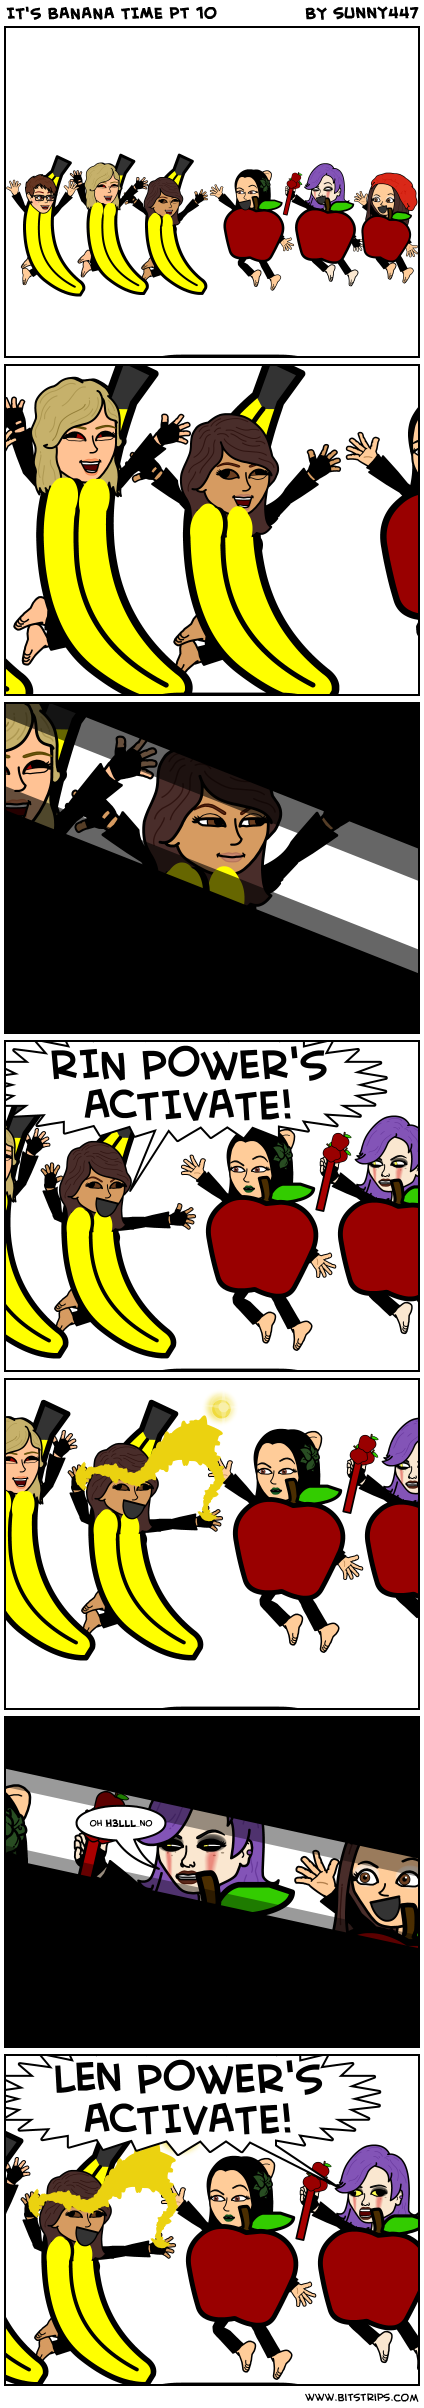 IT'S BANANA TIME pt 10